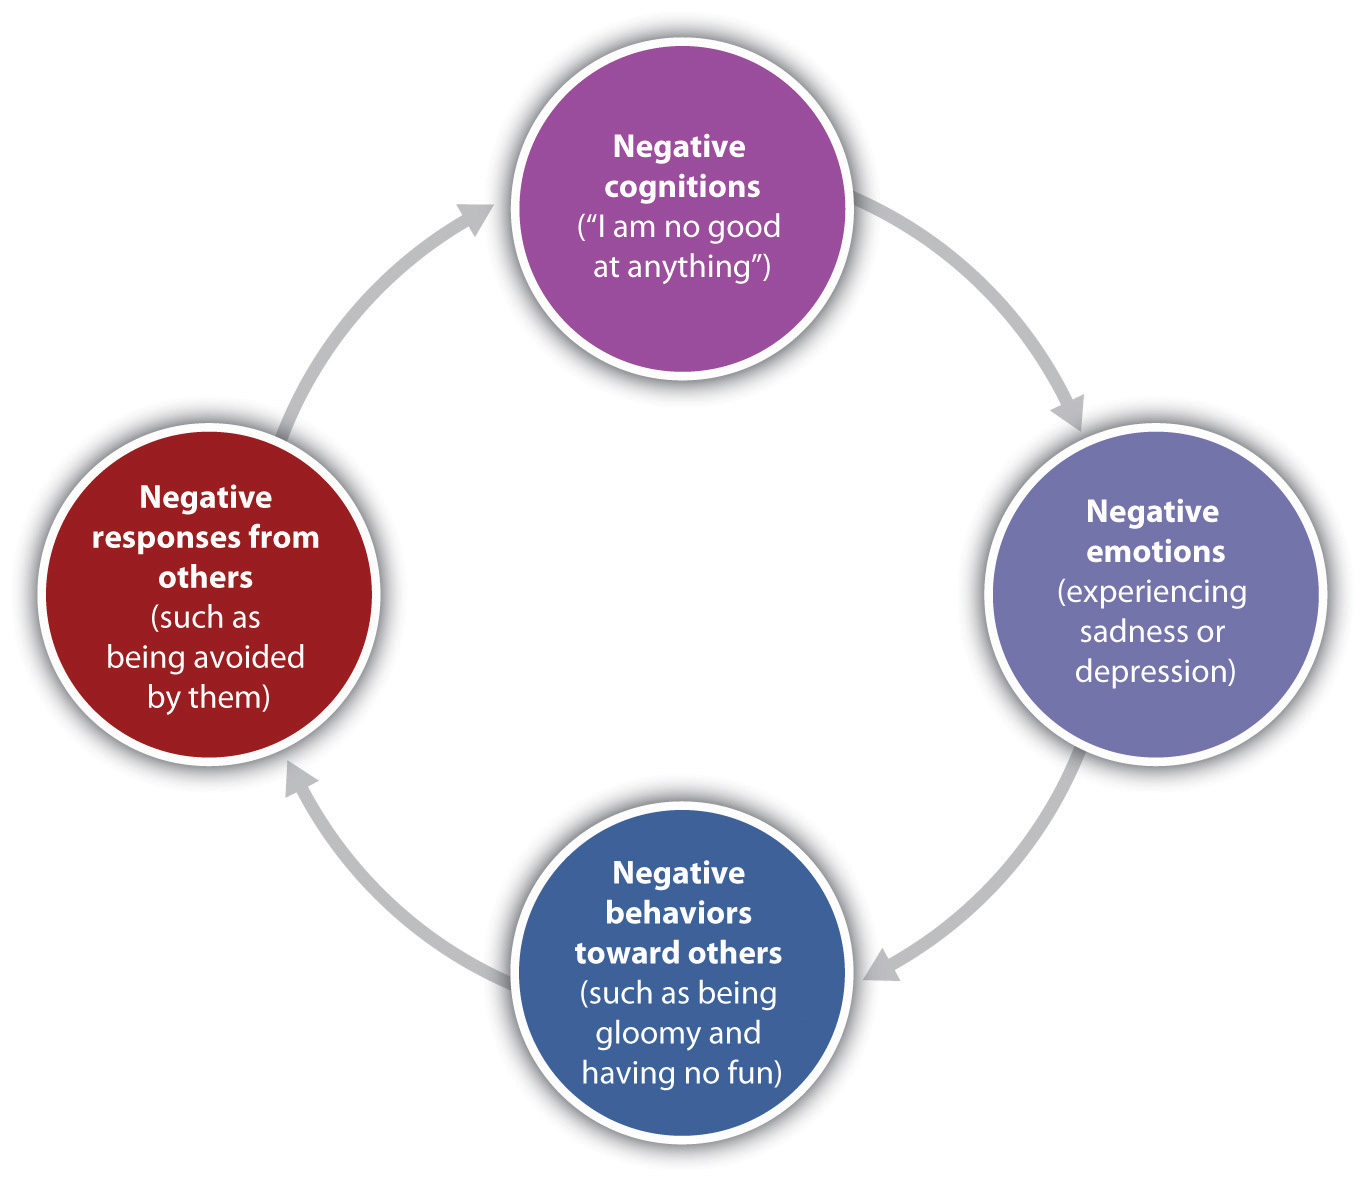 """This chart shows four circles connected by arrows showing a cyclical process. At the top, labeled """"Negative cognitions,"""" this contains """"I am no good at anything"""" and points to the right; at the right, labeled """"Negative emotions,"""" this contains """"experiencing sadness or depression"""" and points to the bottom; at the bottom, labeled """"Negative behaviors toward others,"""" this contains """"such as being gloomy and having no fun"""" and points to the left; at the left, labeled """"Negative responses from others,"""" this contains """"such as being avoided by them"""" and points to the top."""